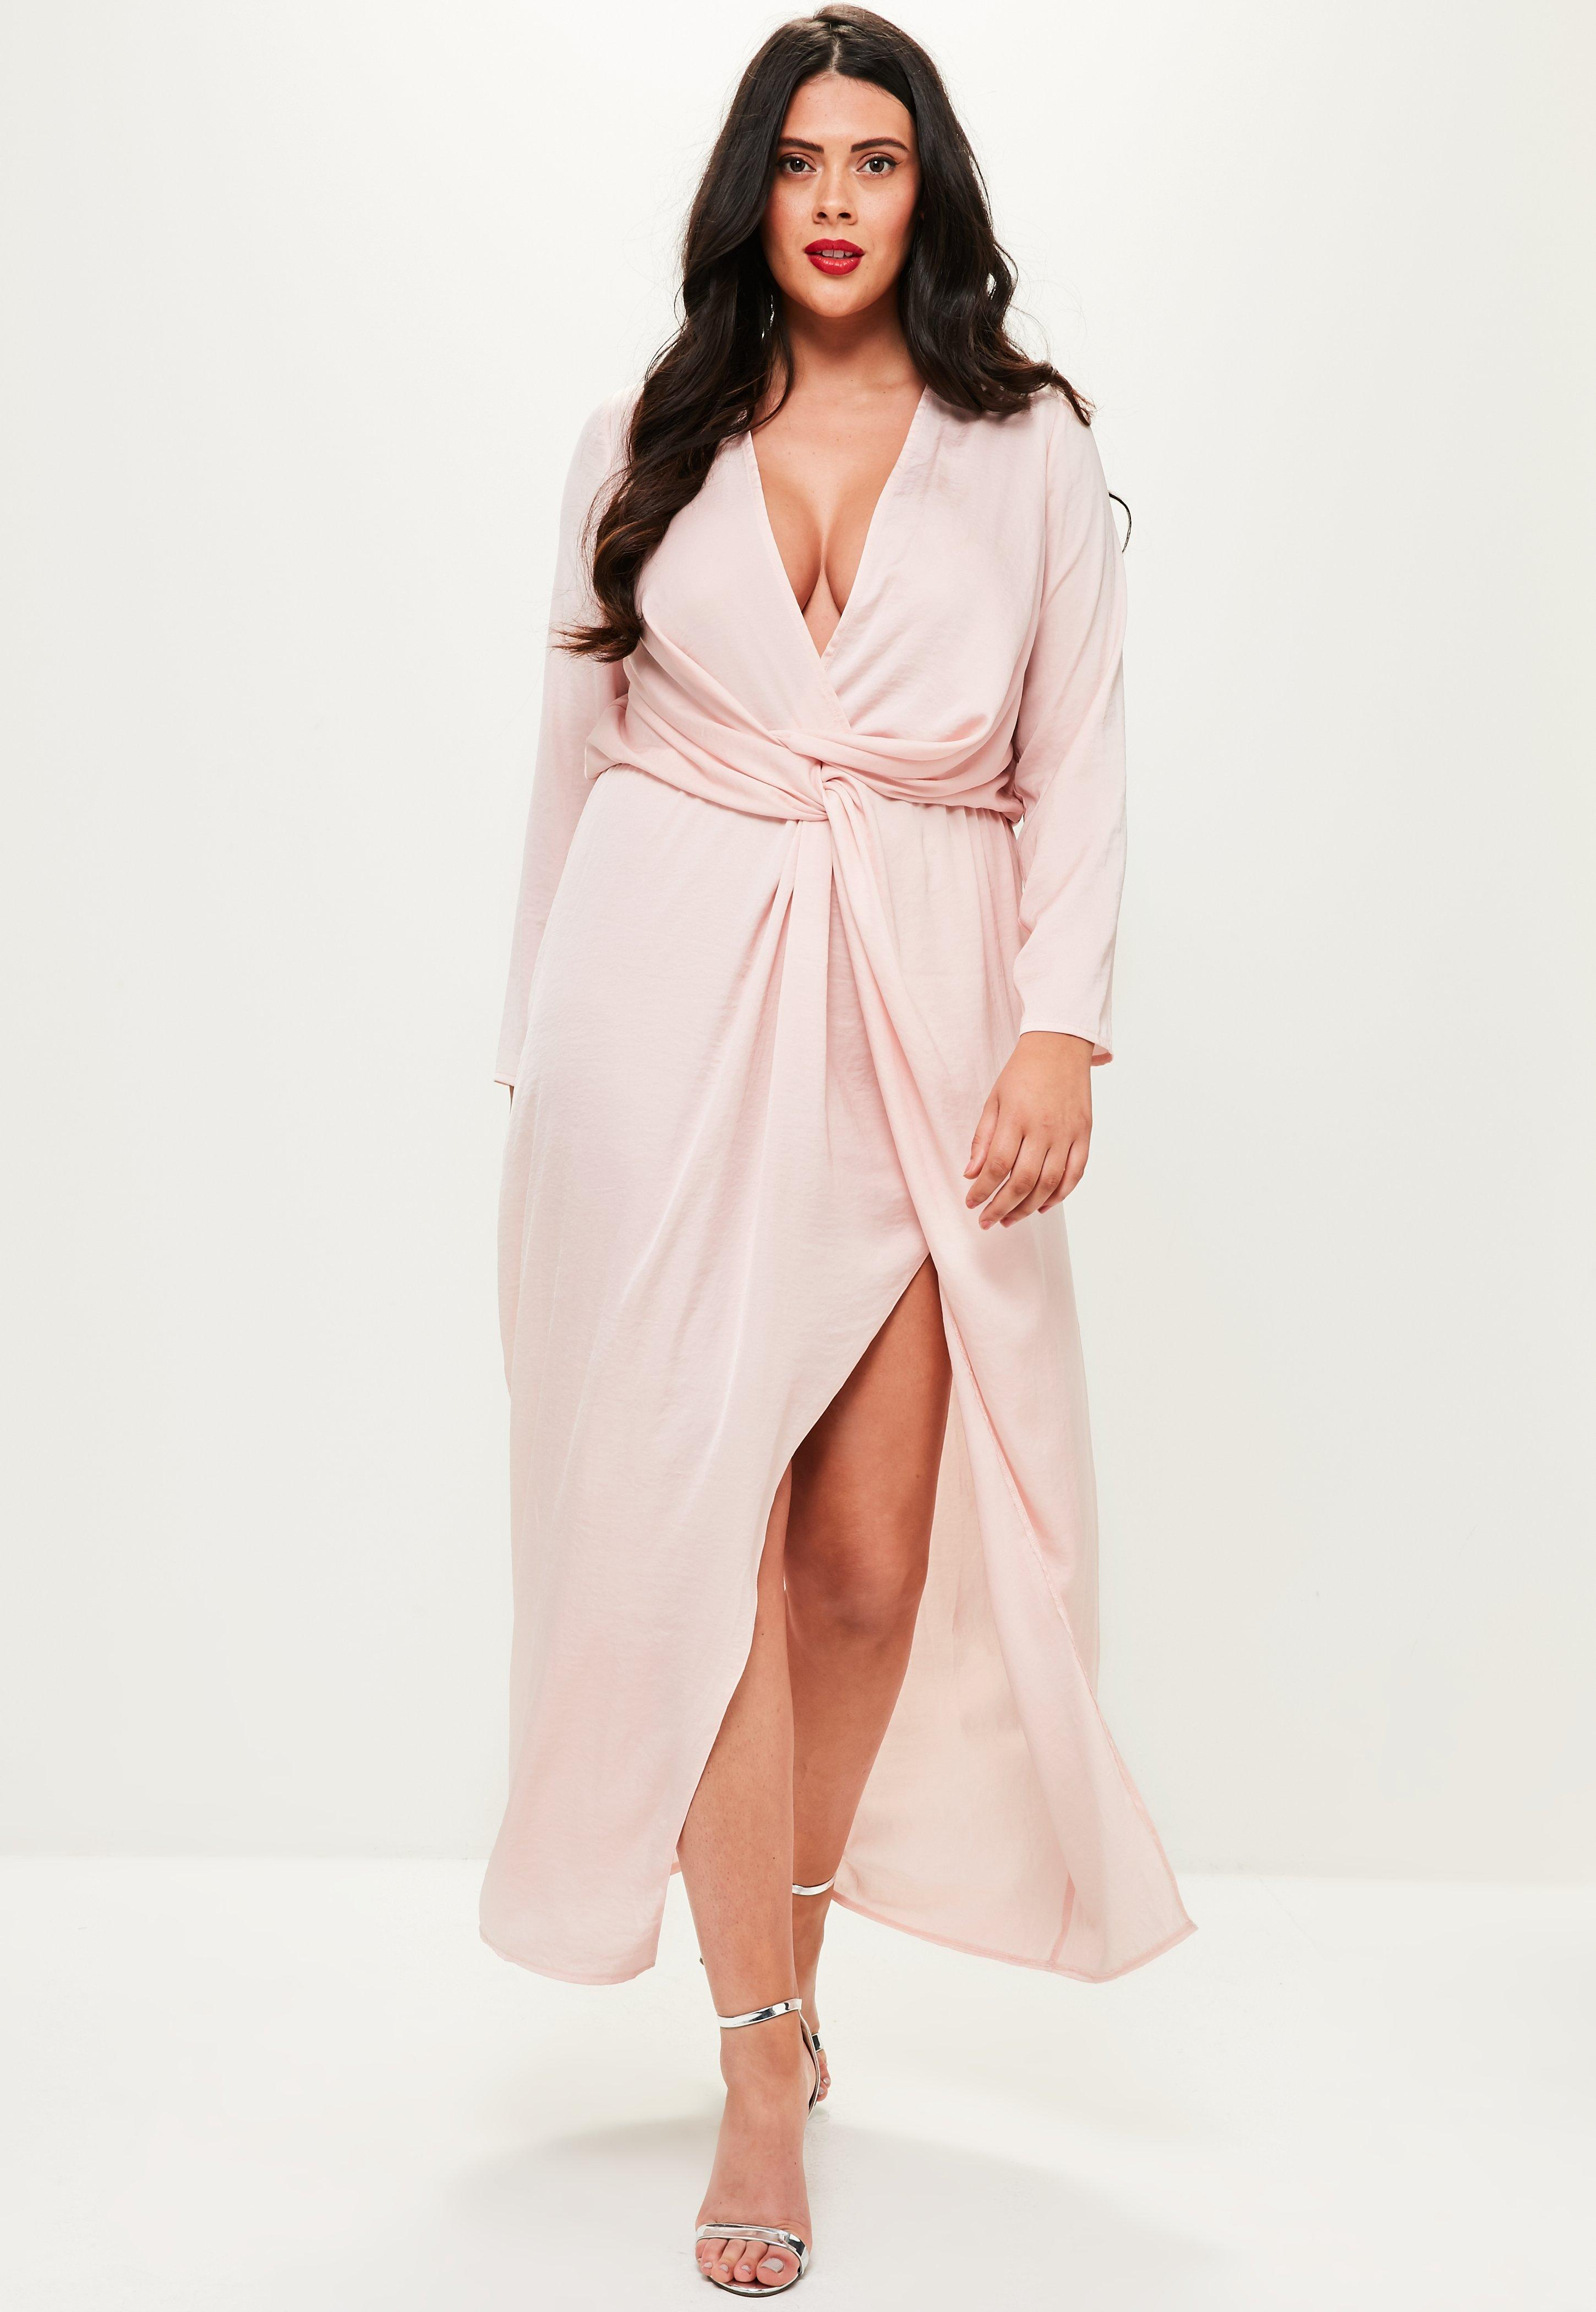 Lyst - Missguided Curve Pink Satin Thigh Split Wrap Maxi Dress in Pink 4f420eb2b